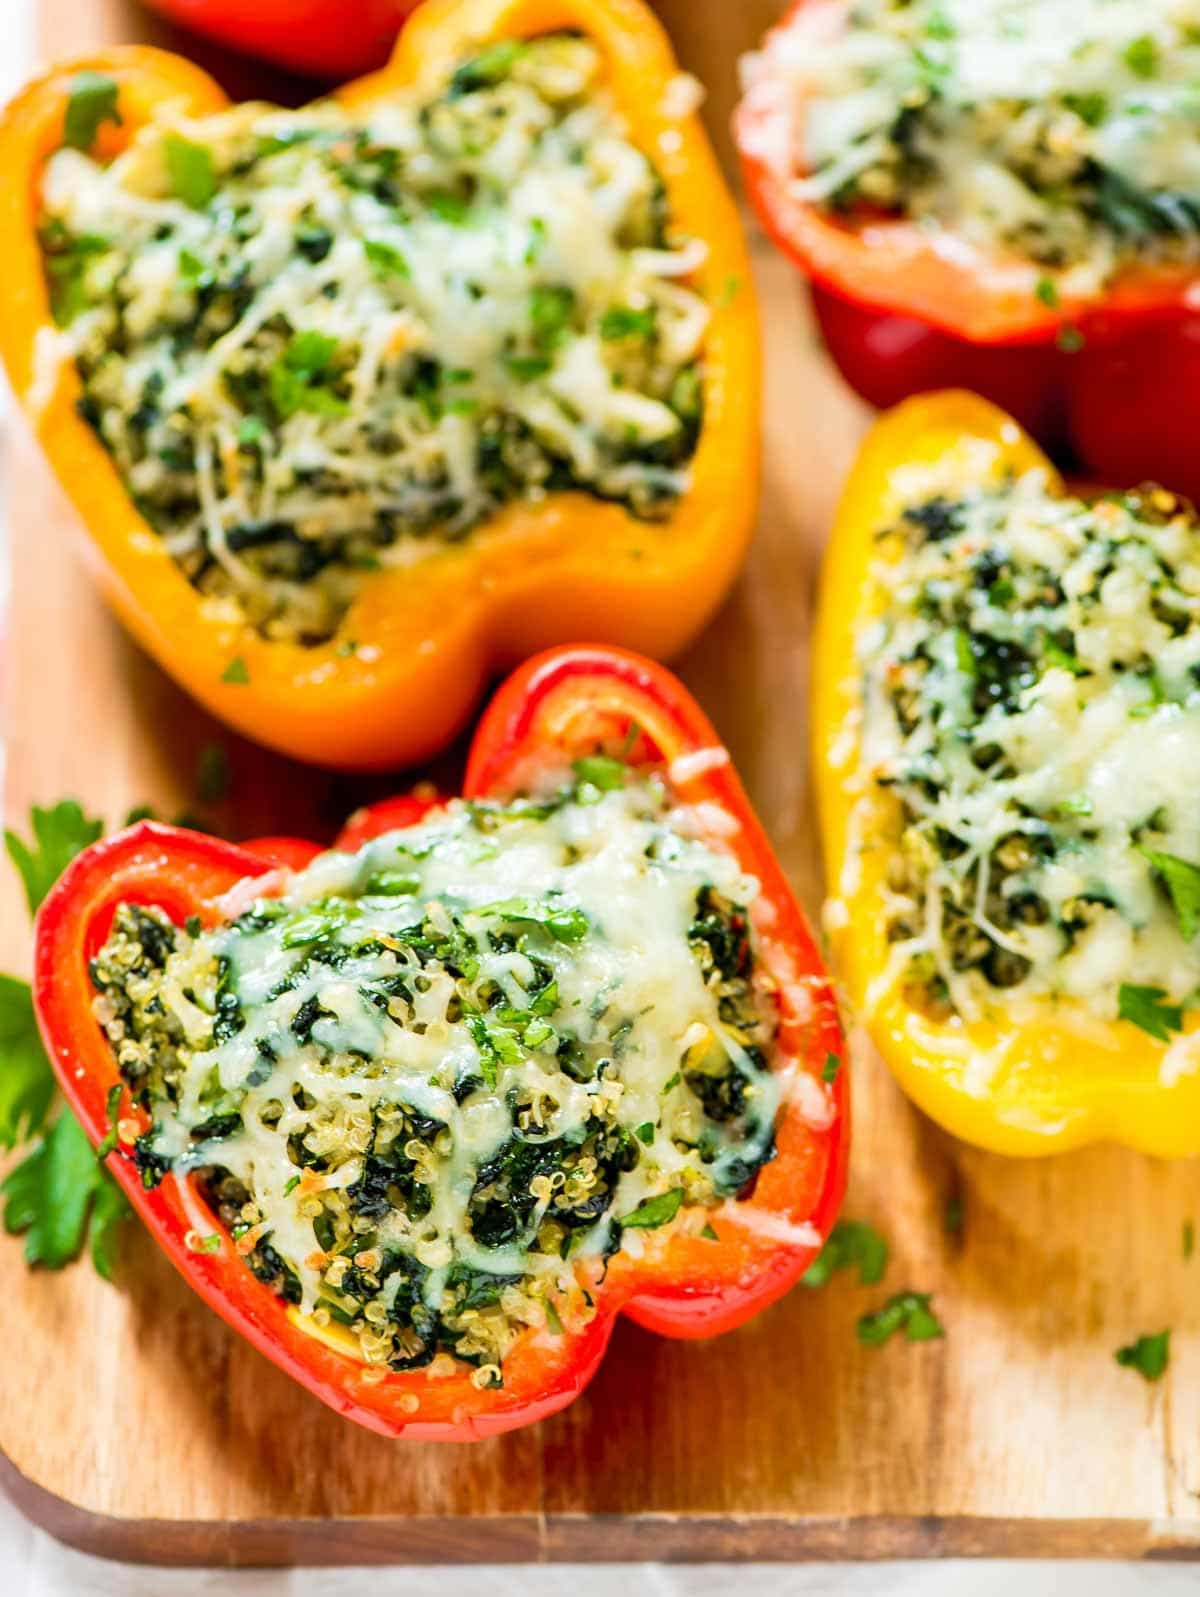 Spinach Artichoke Quinoa Stuffed Bell Peppers – An easy and healthy recipe. We can't get enough! @wellplated